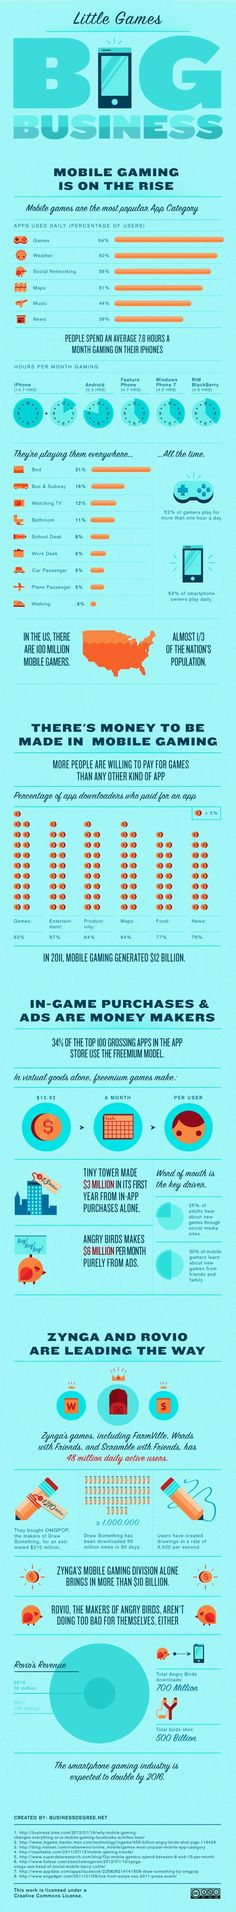 Mobile Games = Big Business.  Great #infographic that shows the tremendous growth of mobile games.    Check out www.imrepublic.com to see more mobile games, development and advertising